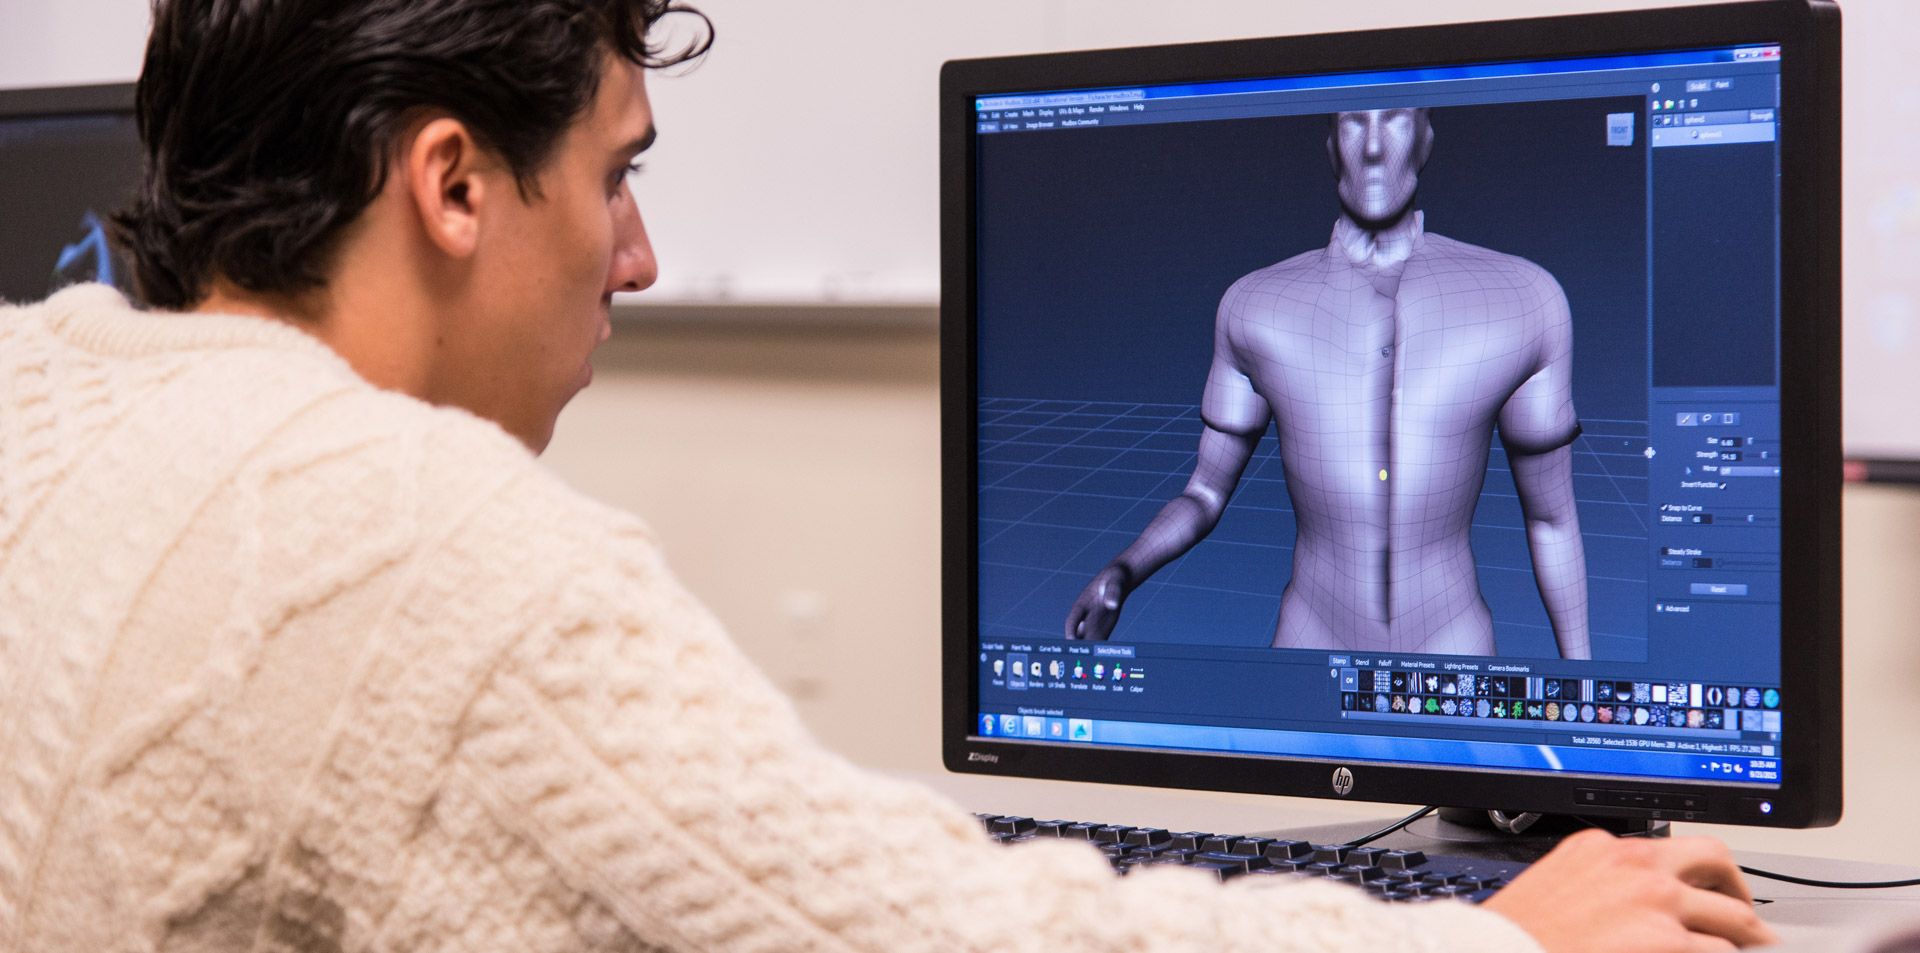 Student looking at a digital rendering of a male torso on computer screen